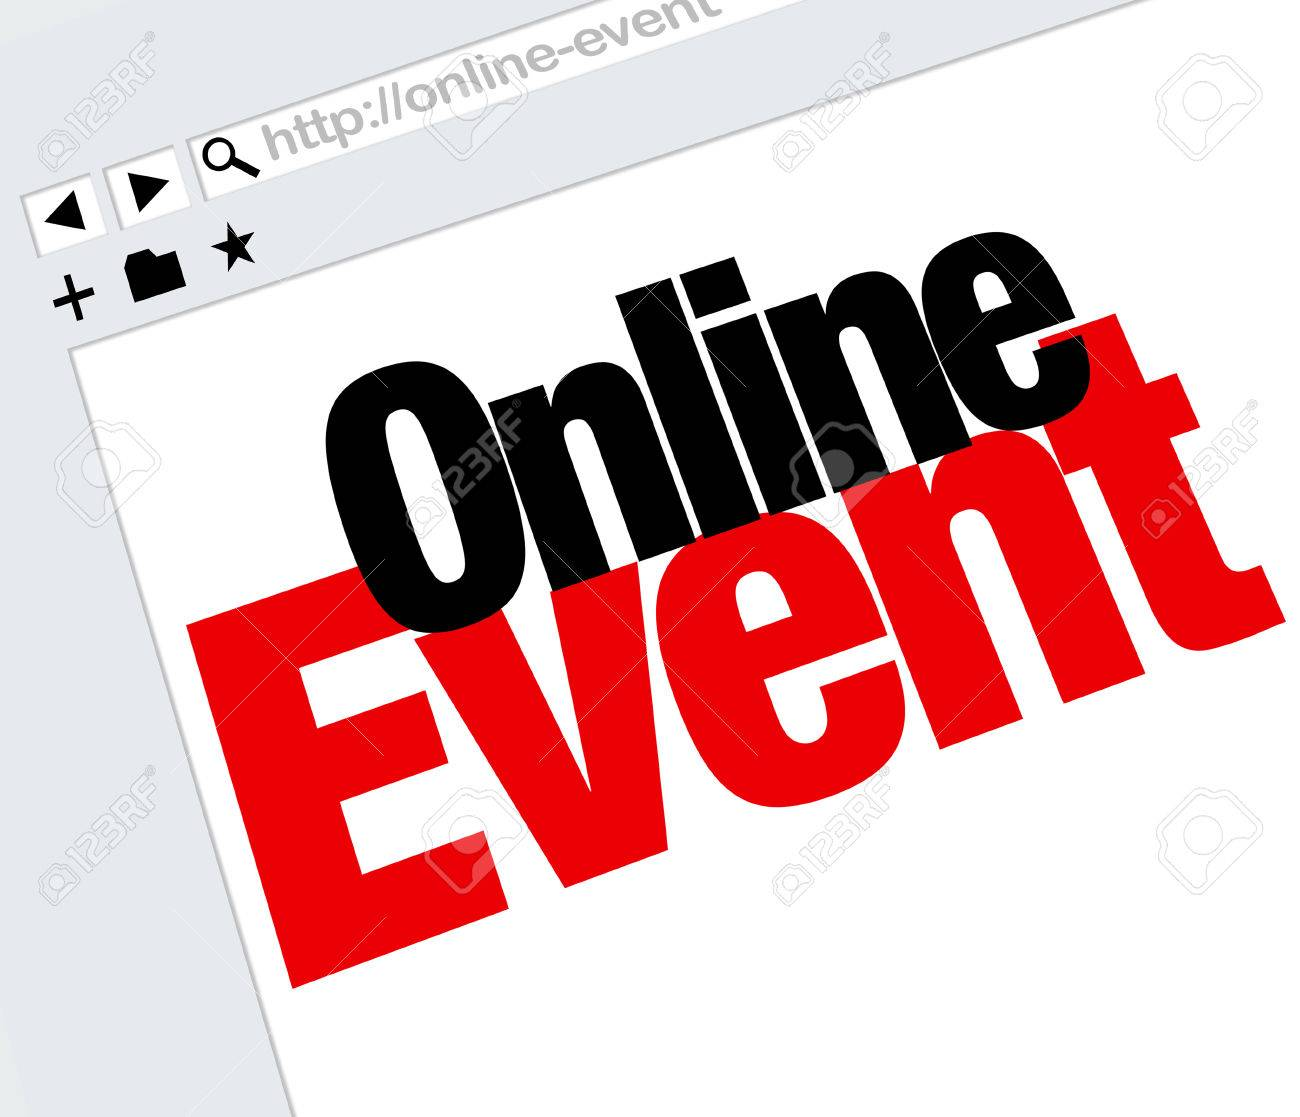 online event words on an internet website advertising or promoting